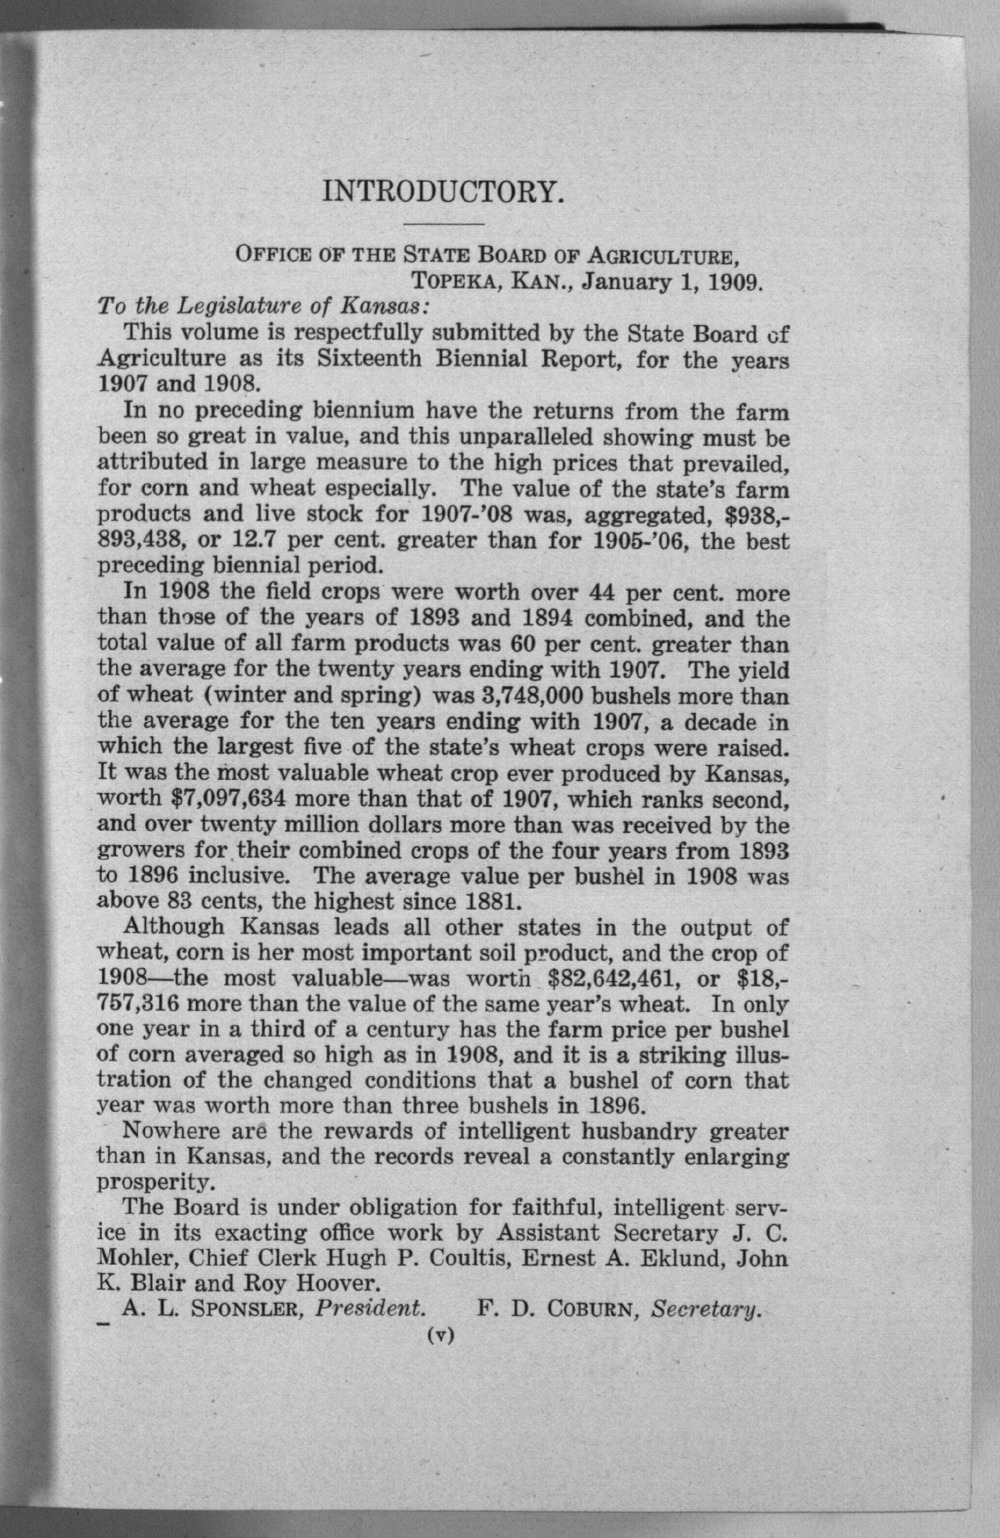 Sixteenth biennial report of the Kansas State Board of Agriculture, 1907-1908 - Introductory